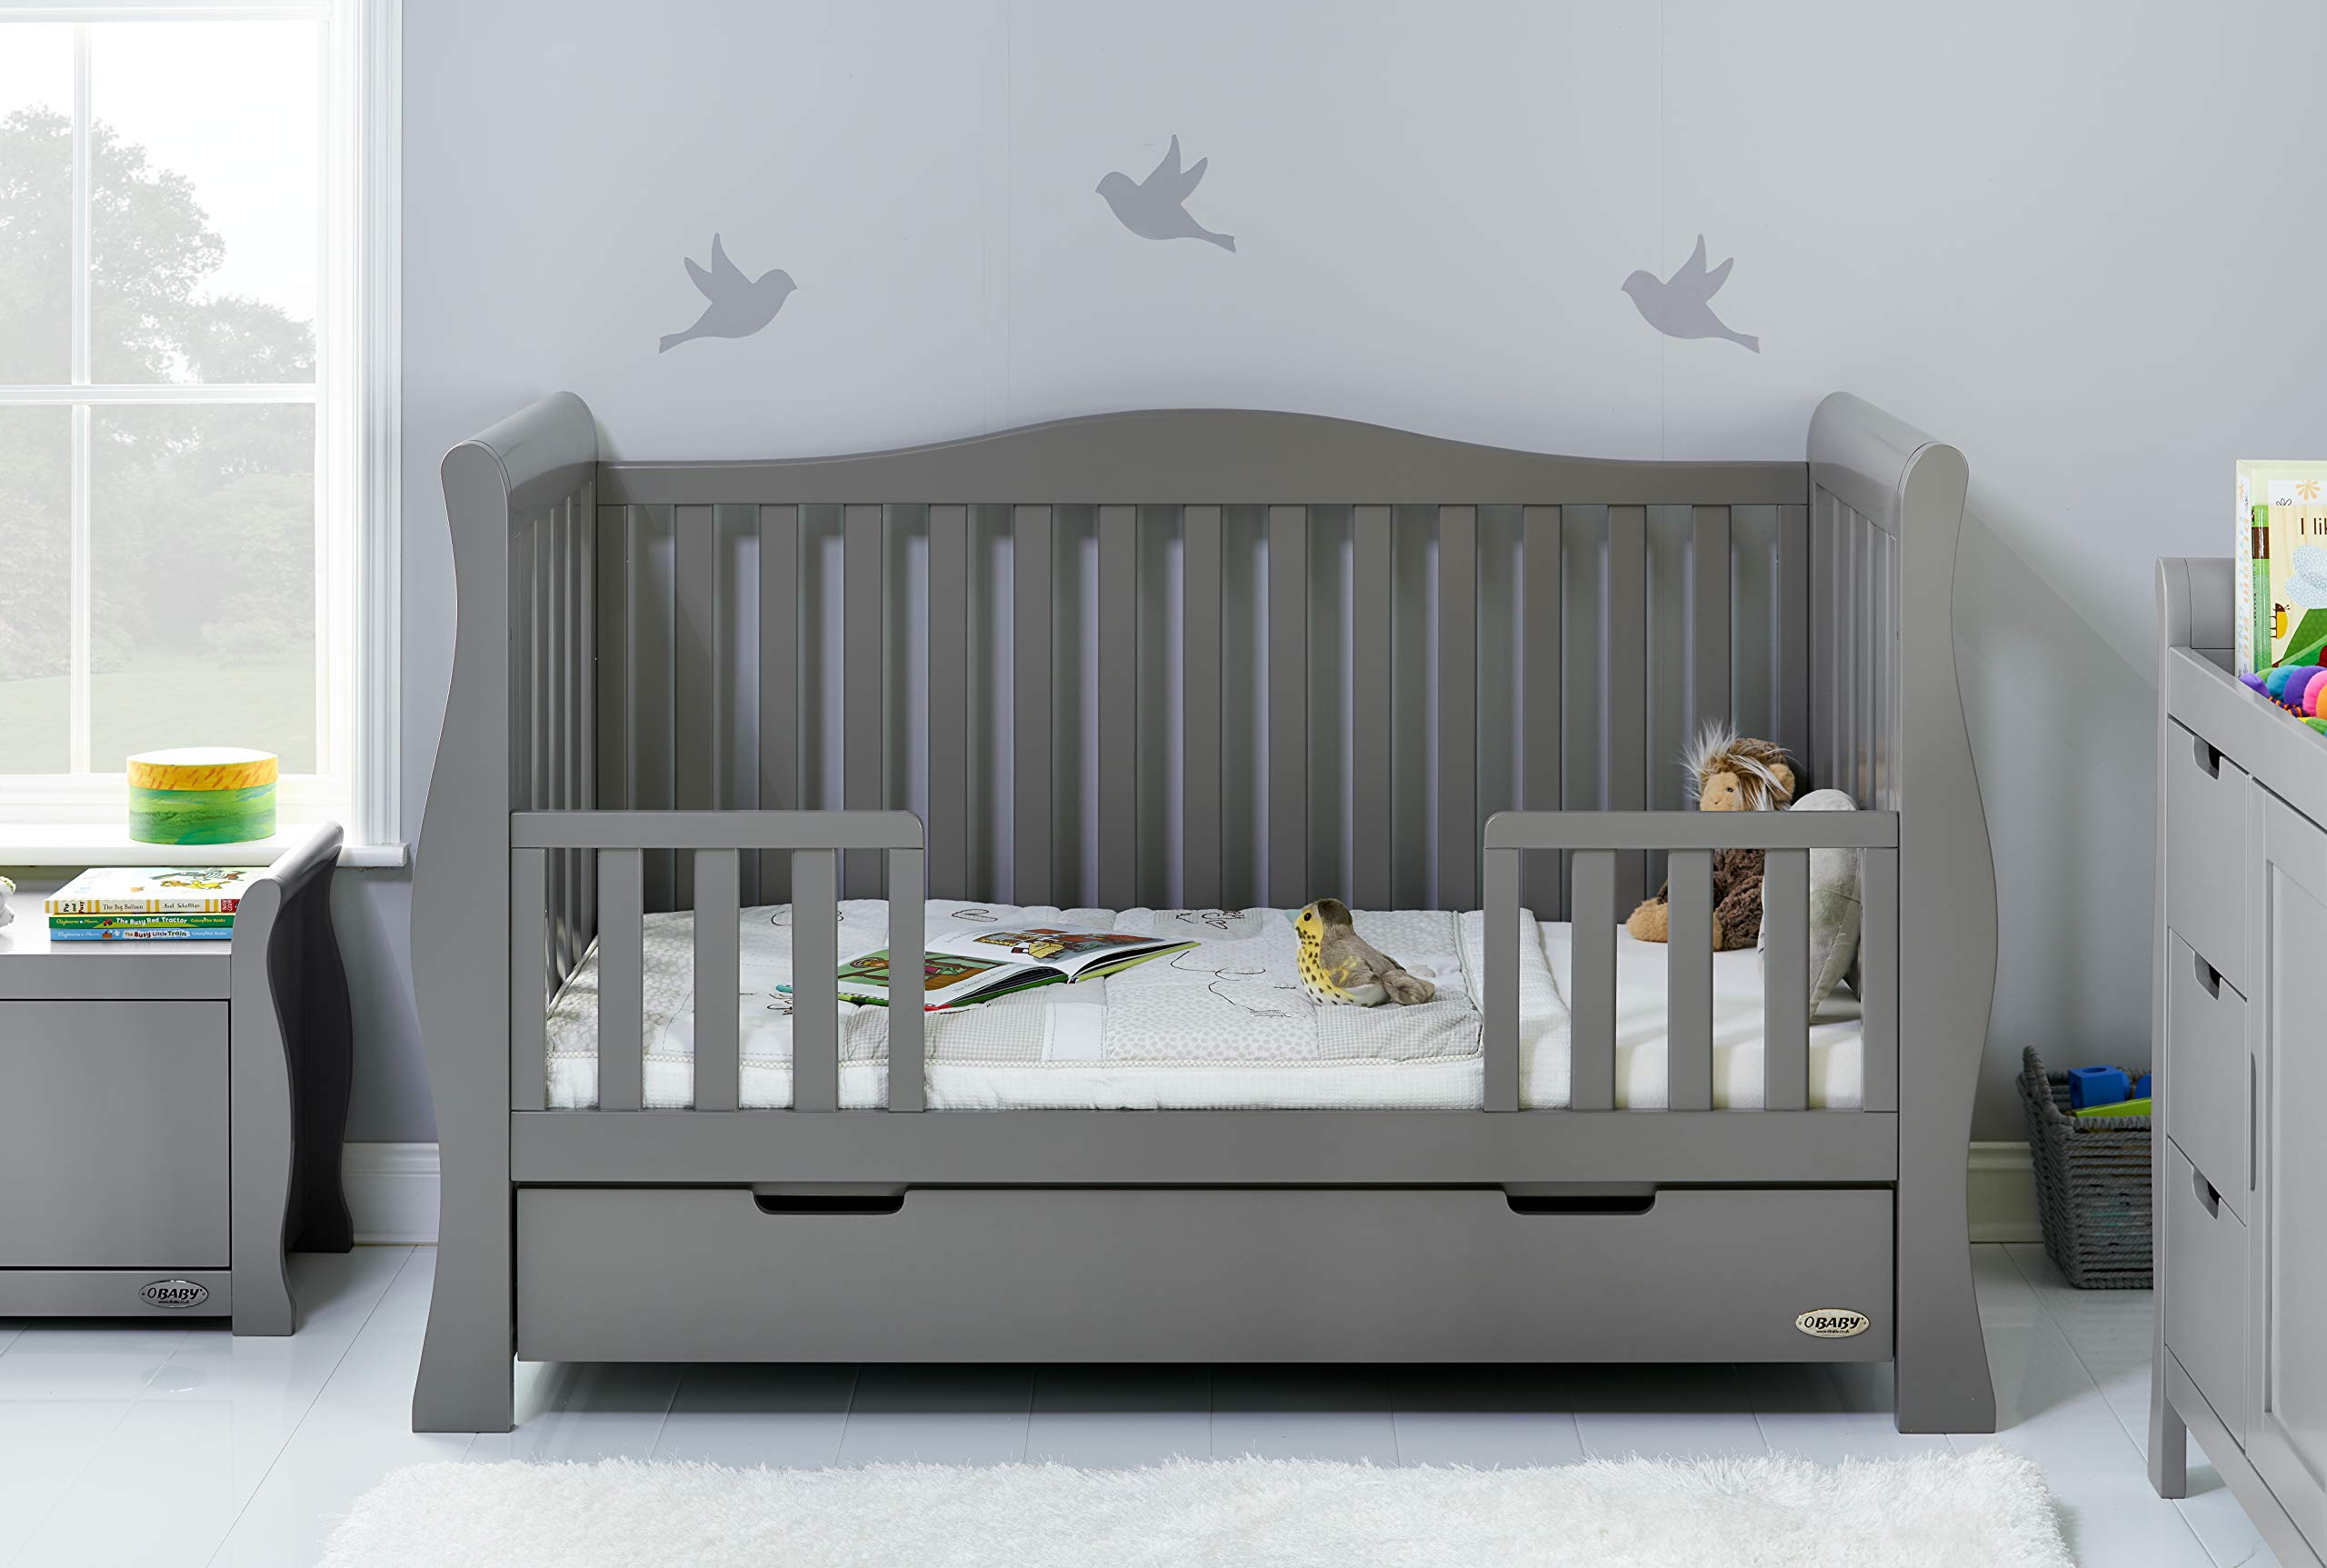 Obaby Stamford Sleigh Luxe Cot Bed - Taupe Grey Obaby Adjustable 3 position mattress height Bed ends split to transforms into toddler bed Includes matching under drawer for storage 2